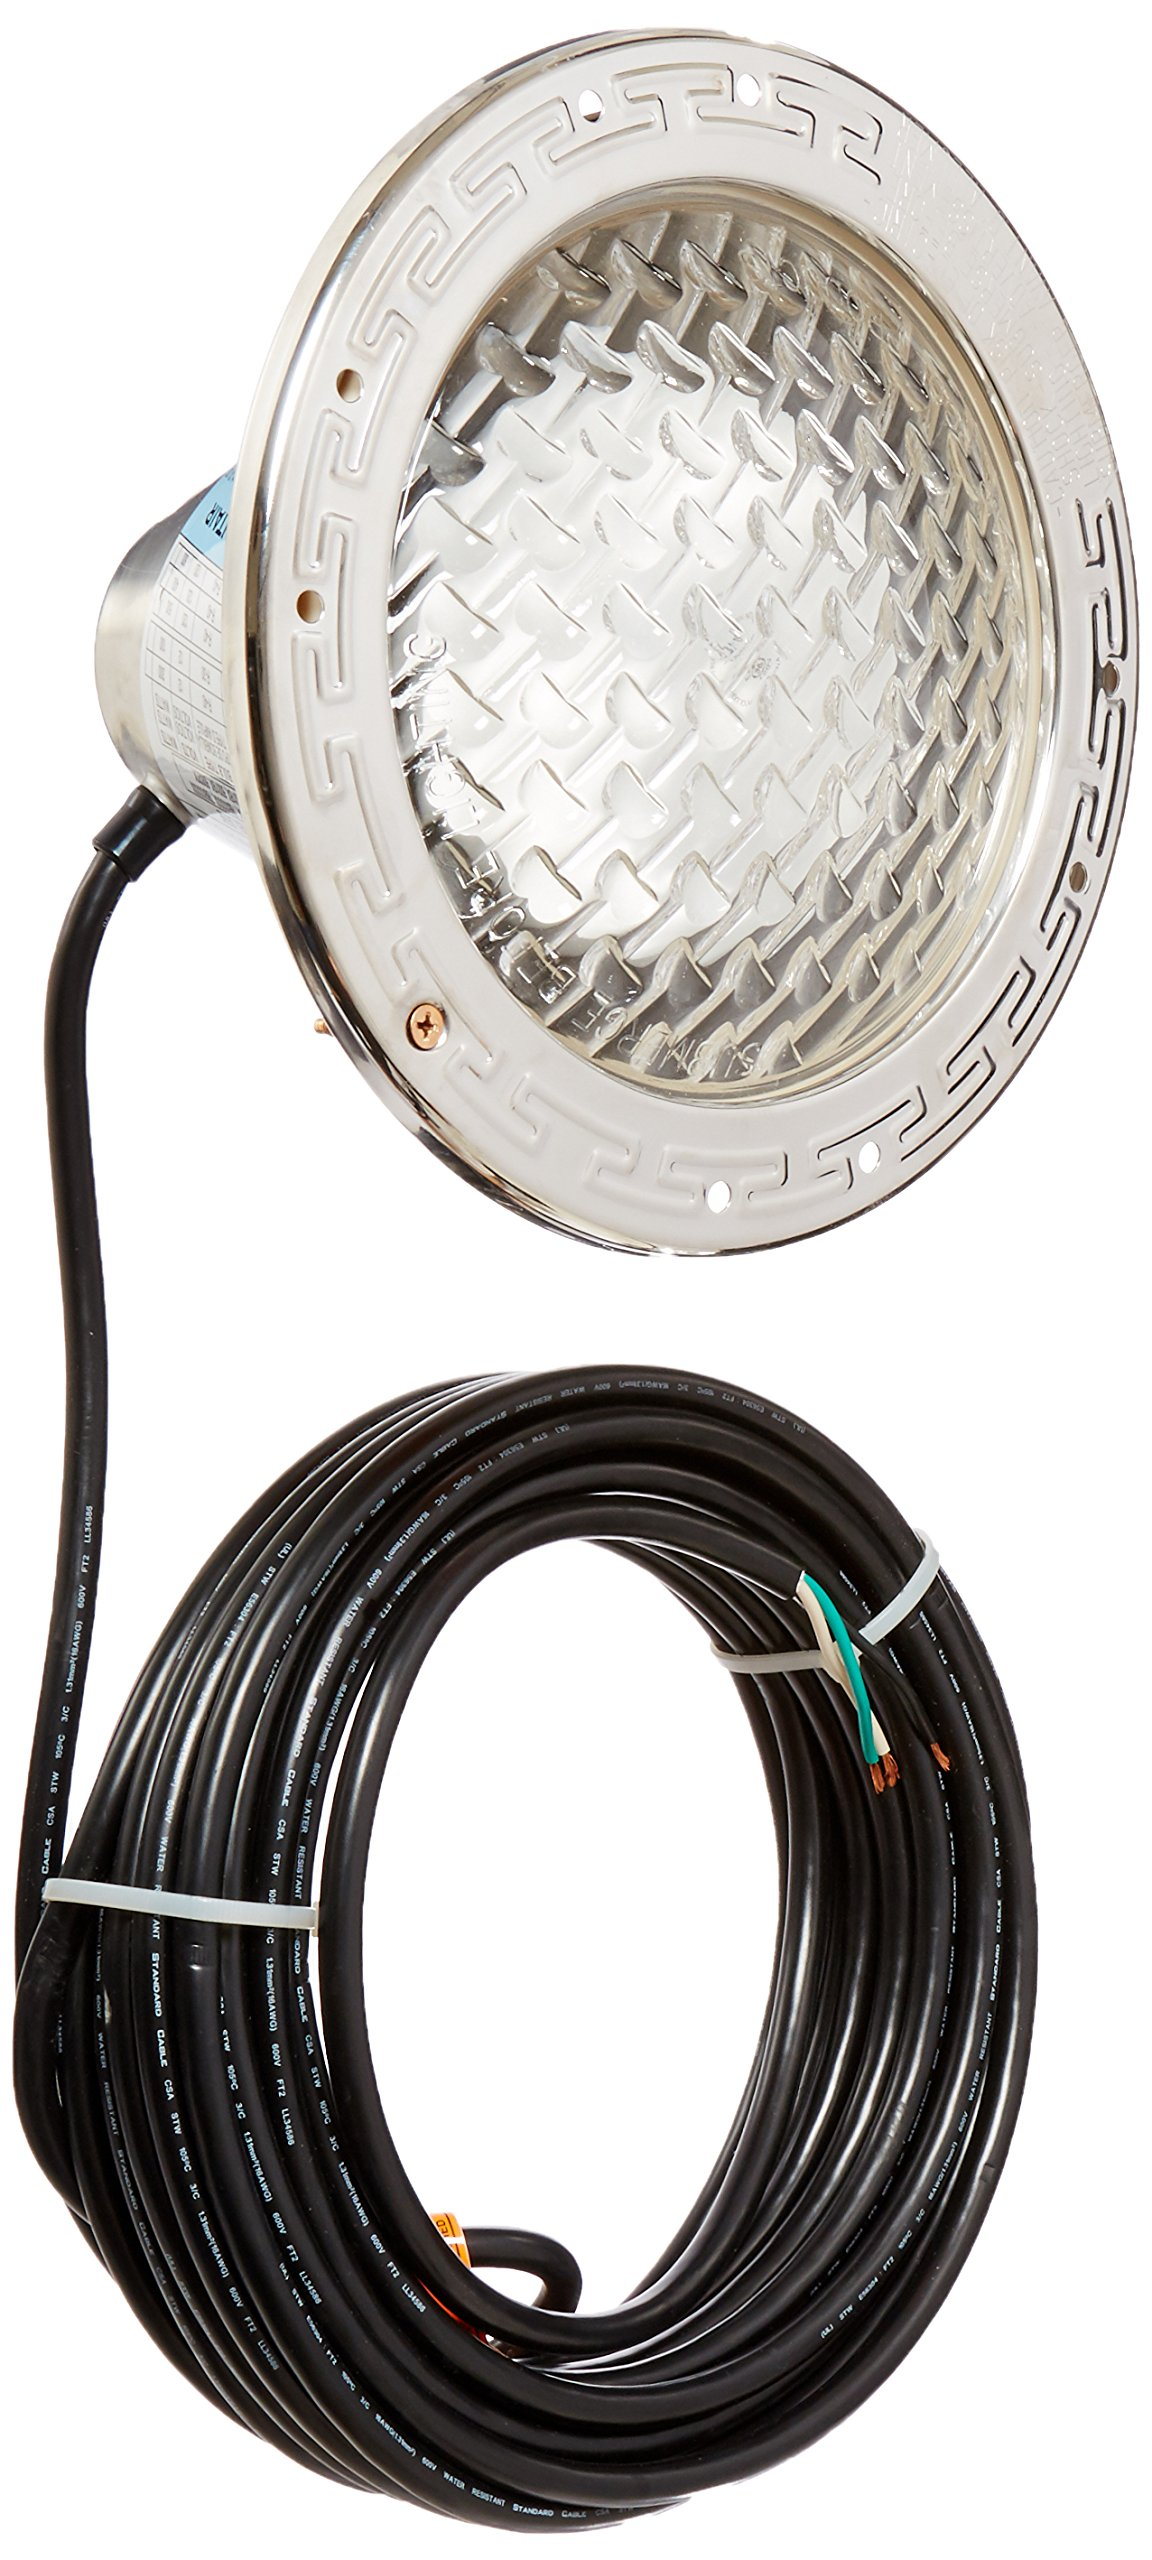 Best Rated In Pool Lighting Products Helpful Customer Reviews Fixture Wiring As Well A Light Wires Besides Electrical Pentair 78458100 Amerlite Underwater Incandescent With Stainless Steel Face Ring 120 Volt